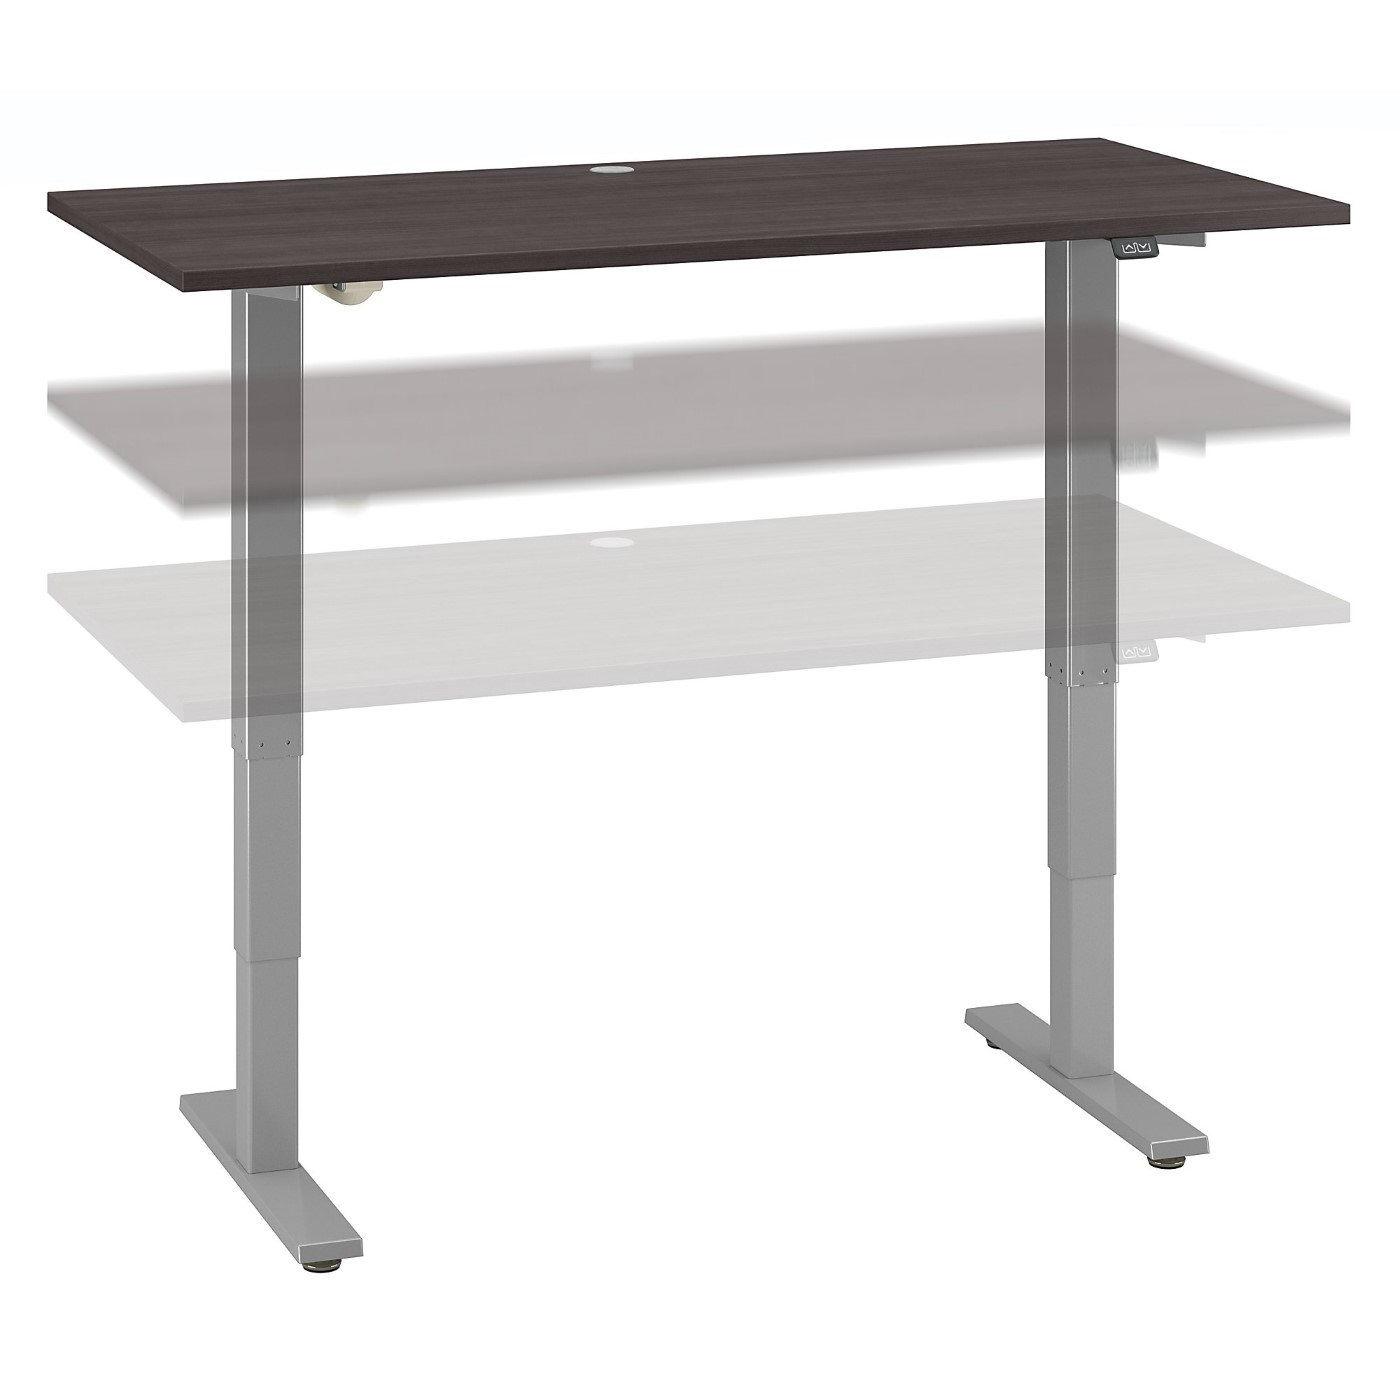 MOVE 40 SERIES BY BUSH BUSINESS FURNITURE 60W X 30D HEIGHT ADJUSTABLE STANDING DESK. FREE SHIPPING